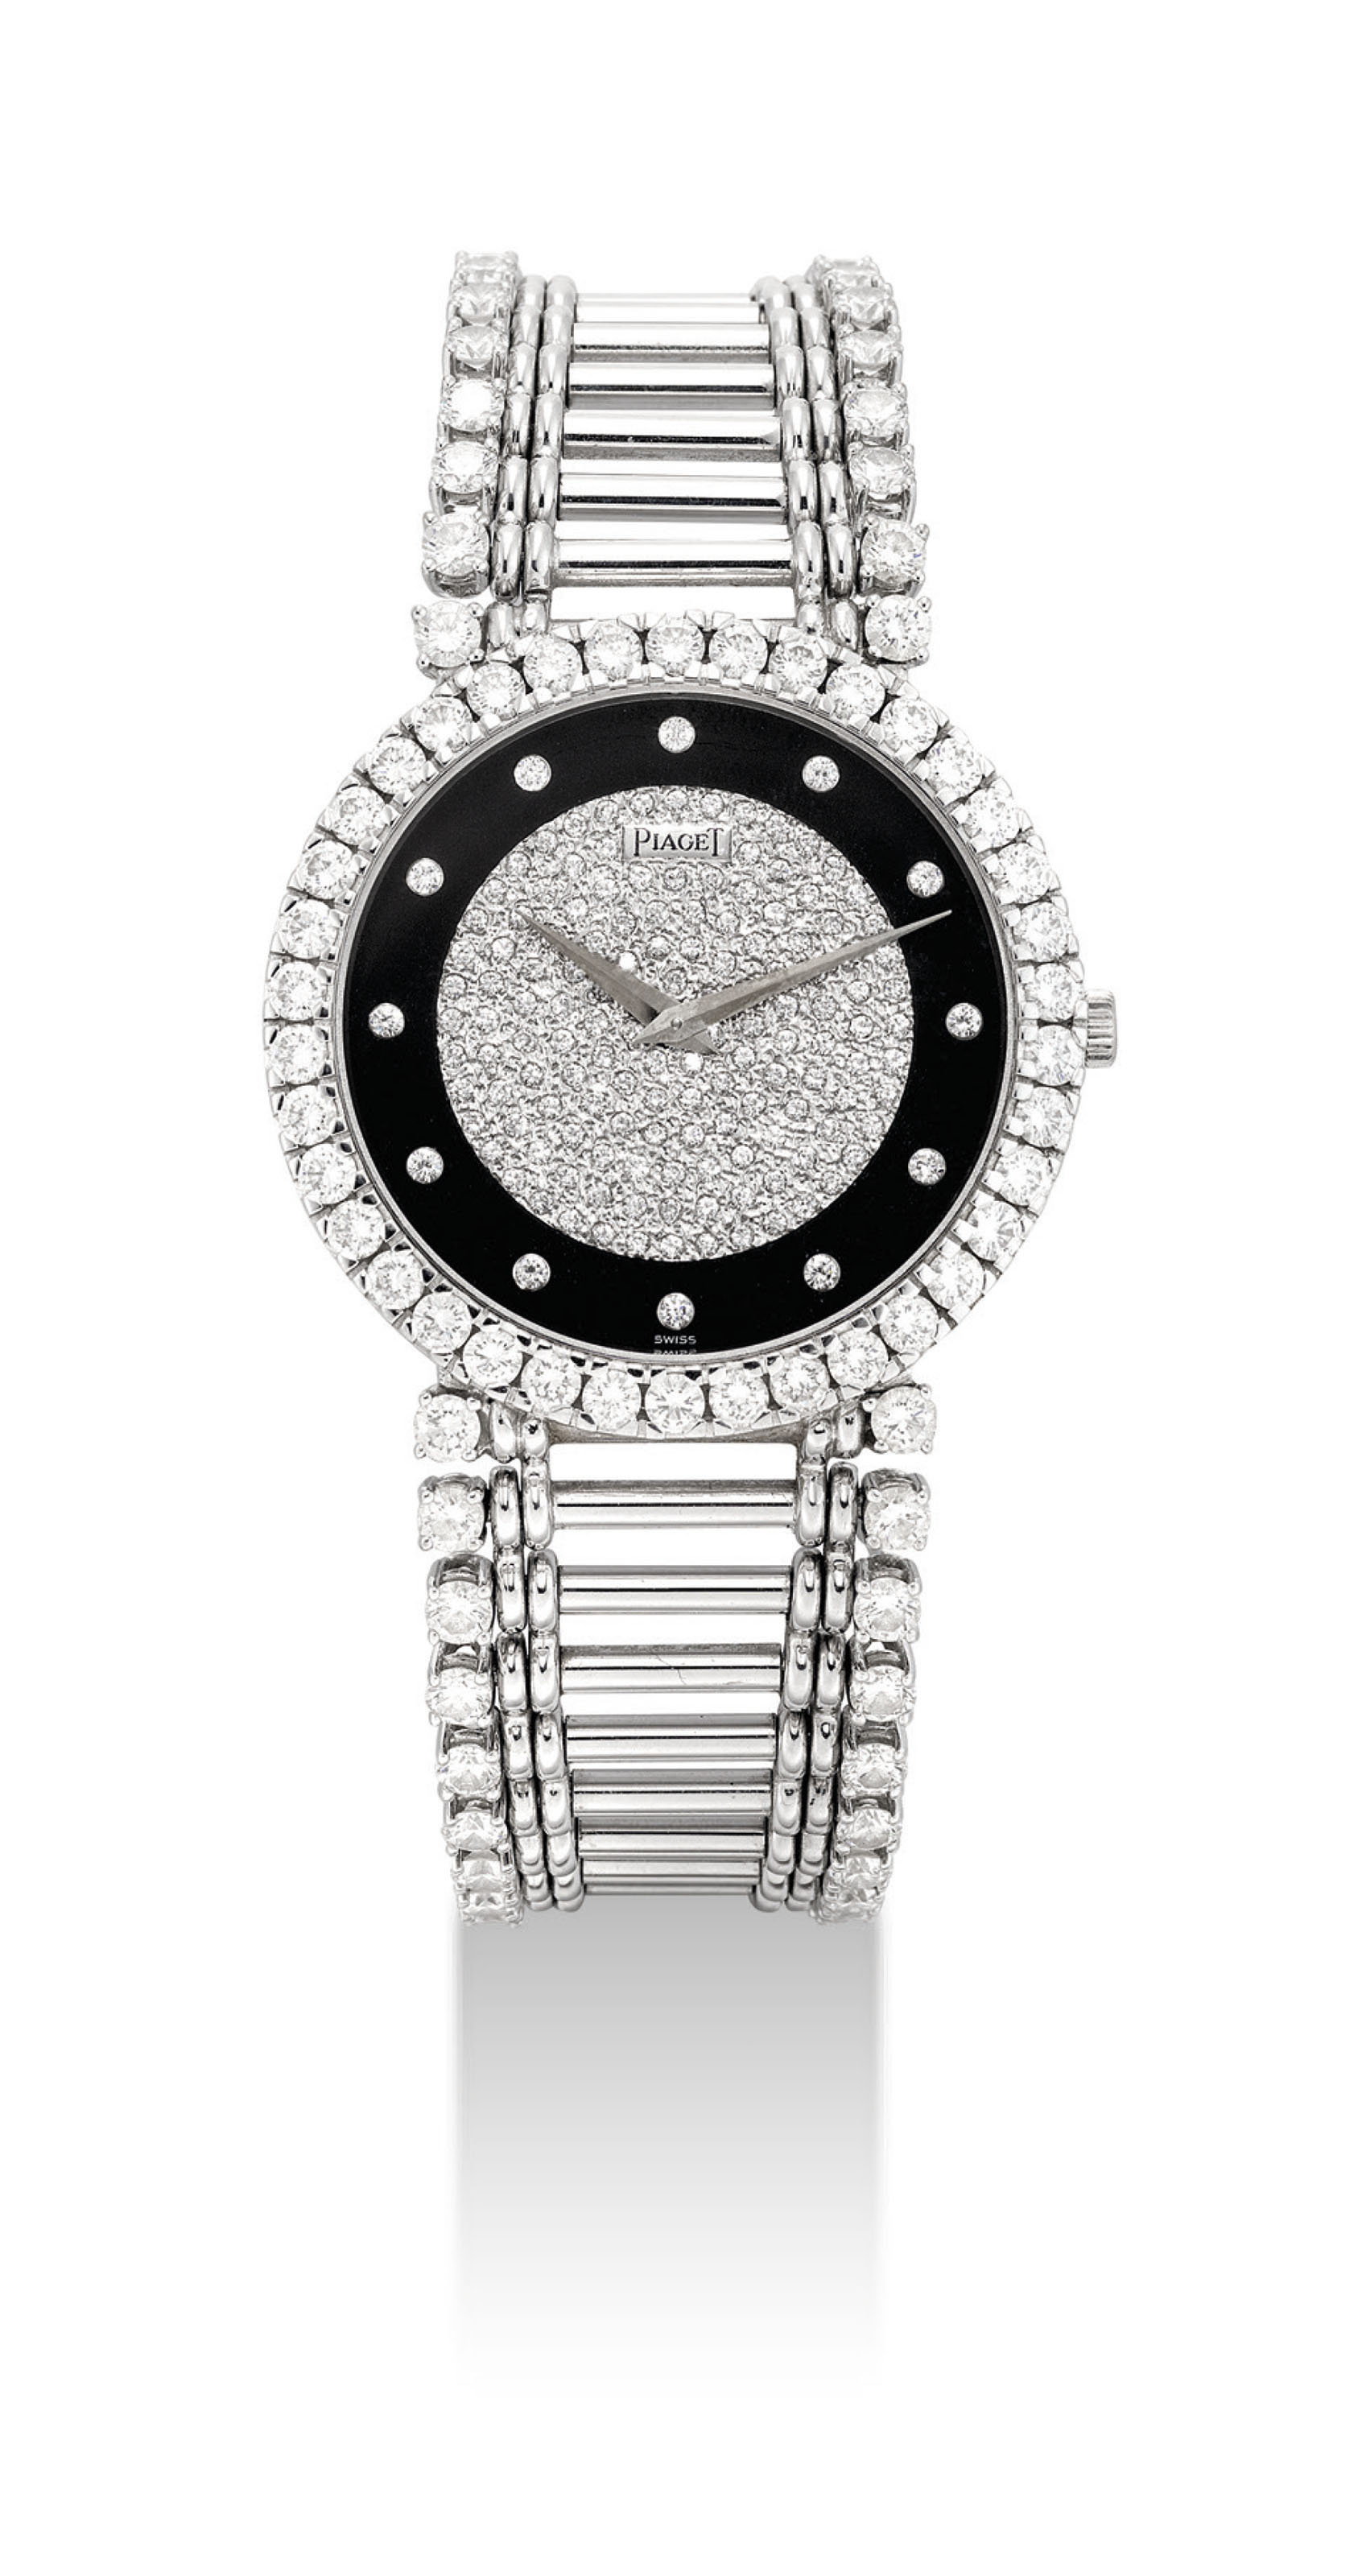 PIAGET. AN 18K WHITE GOLD AND